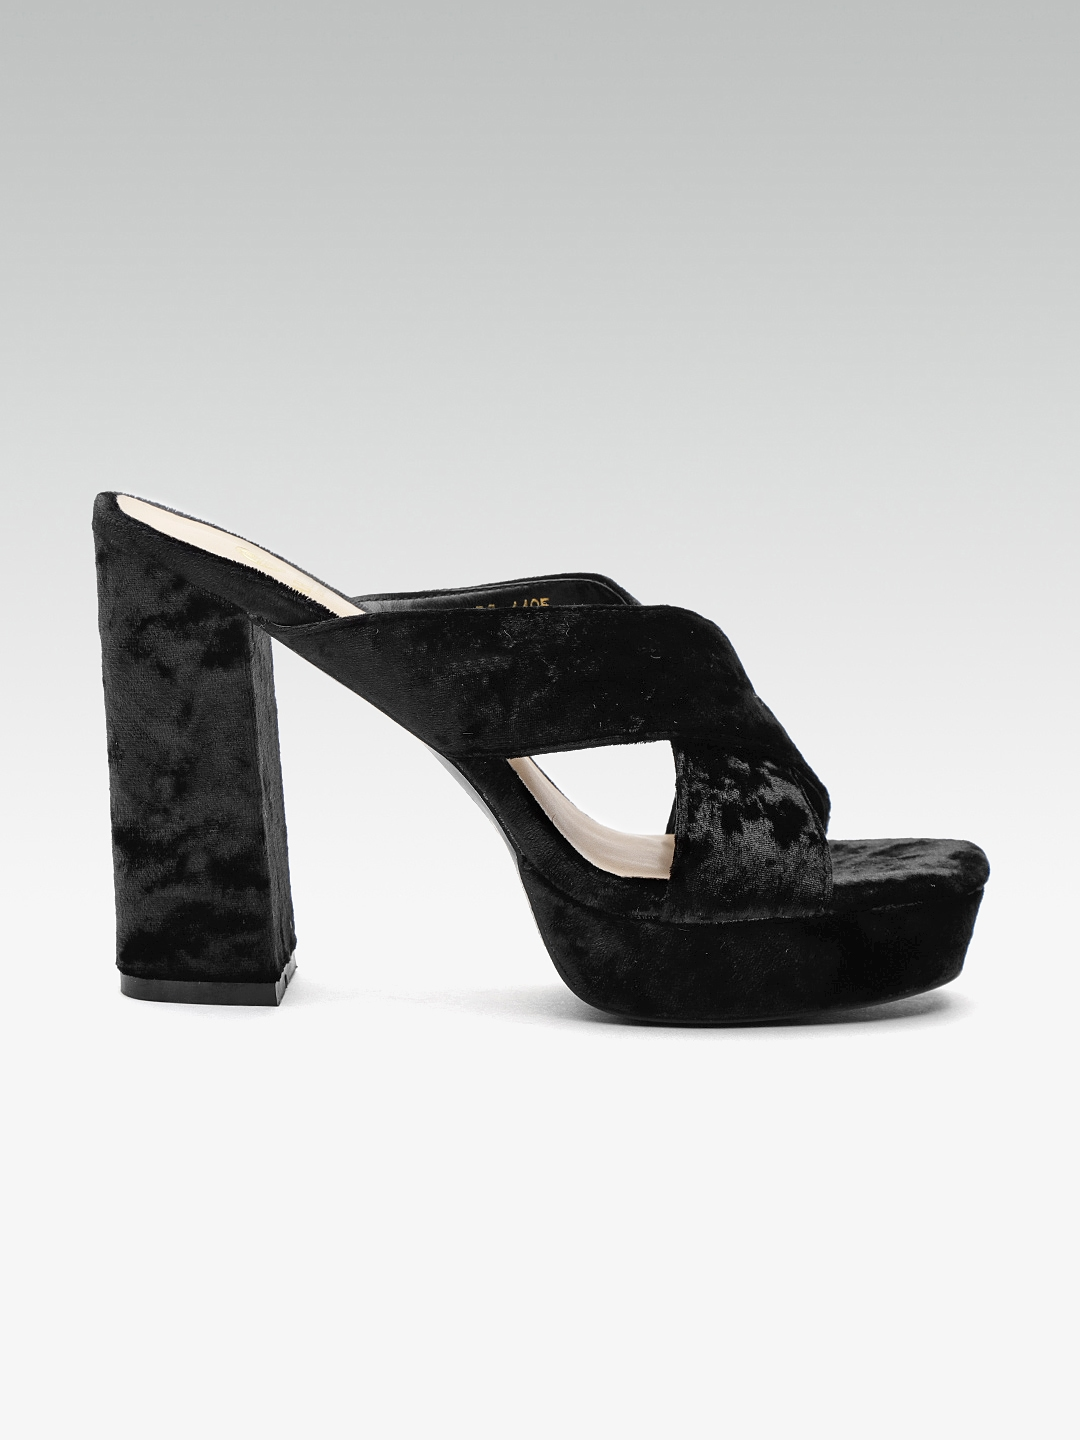 7c01640bd8bb Buy Carlton London Women Black Velvet Solid Platform Heels - Heels ...